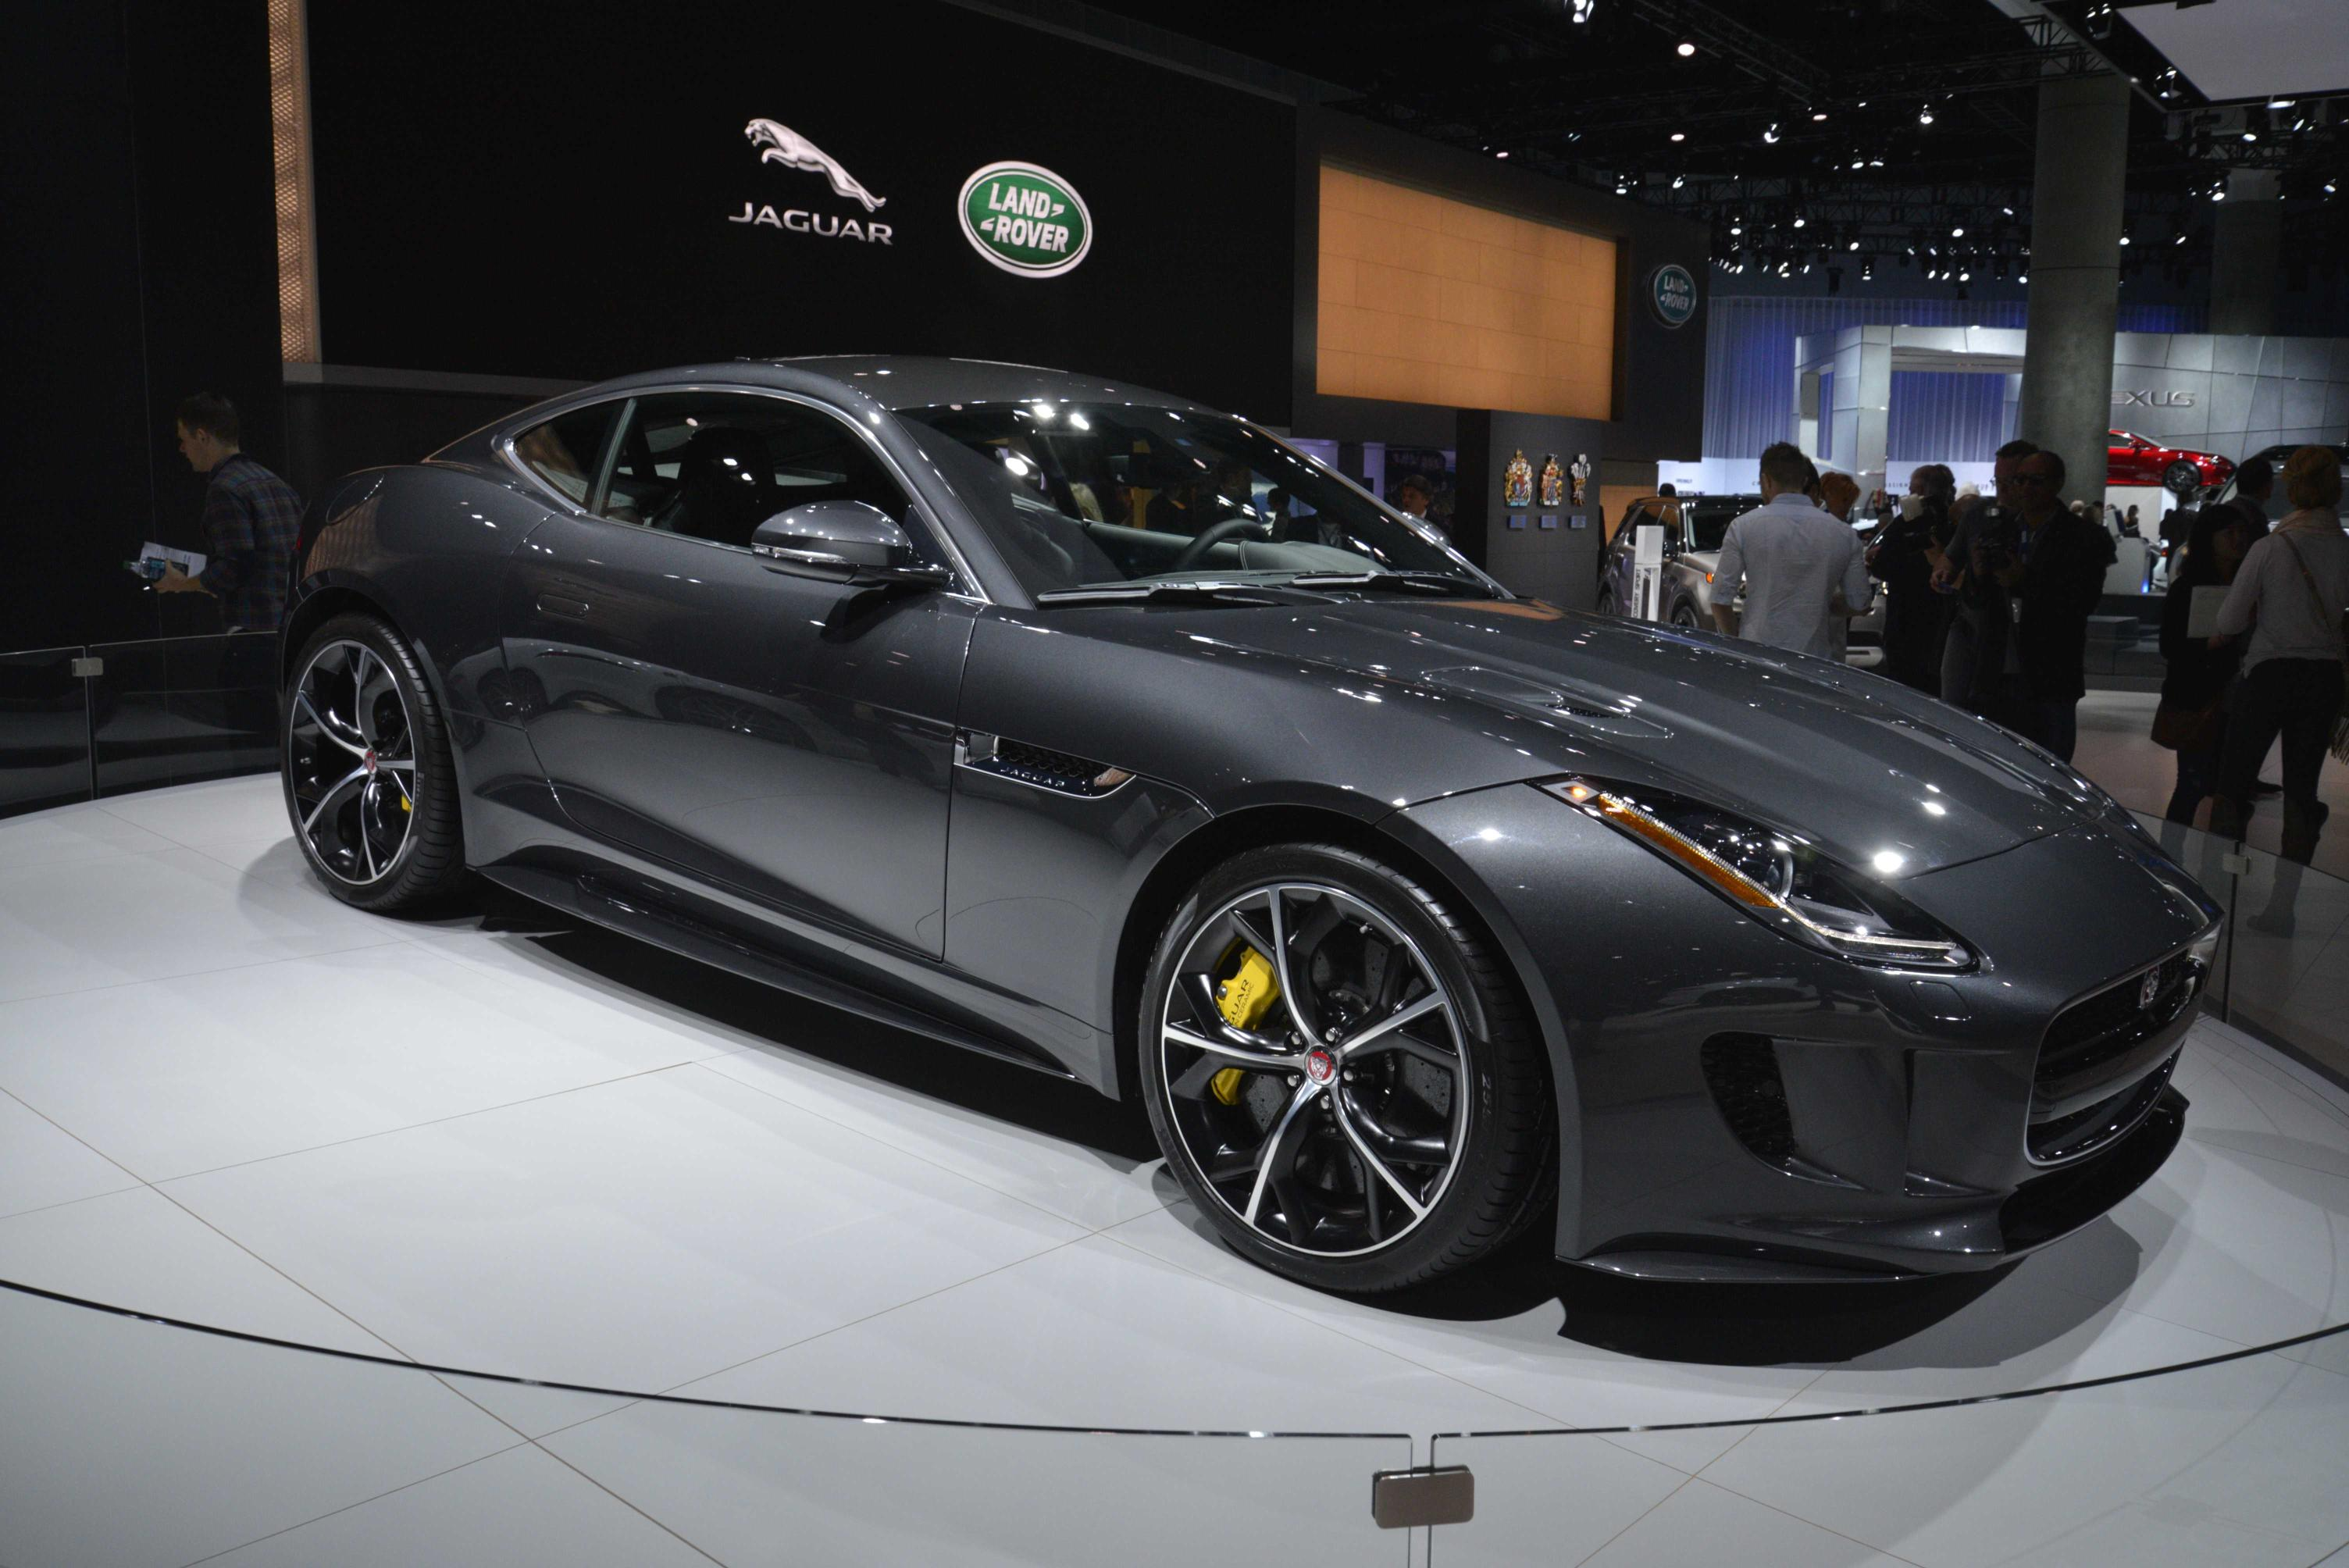 2016 jaguar f type debuts in la with awd and manual gearbox video autoevolution. Black Bedroom Furniture Sets. Home Design Ideas